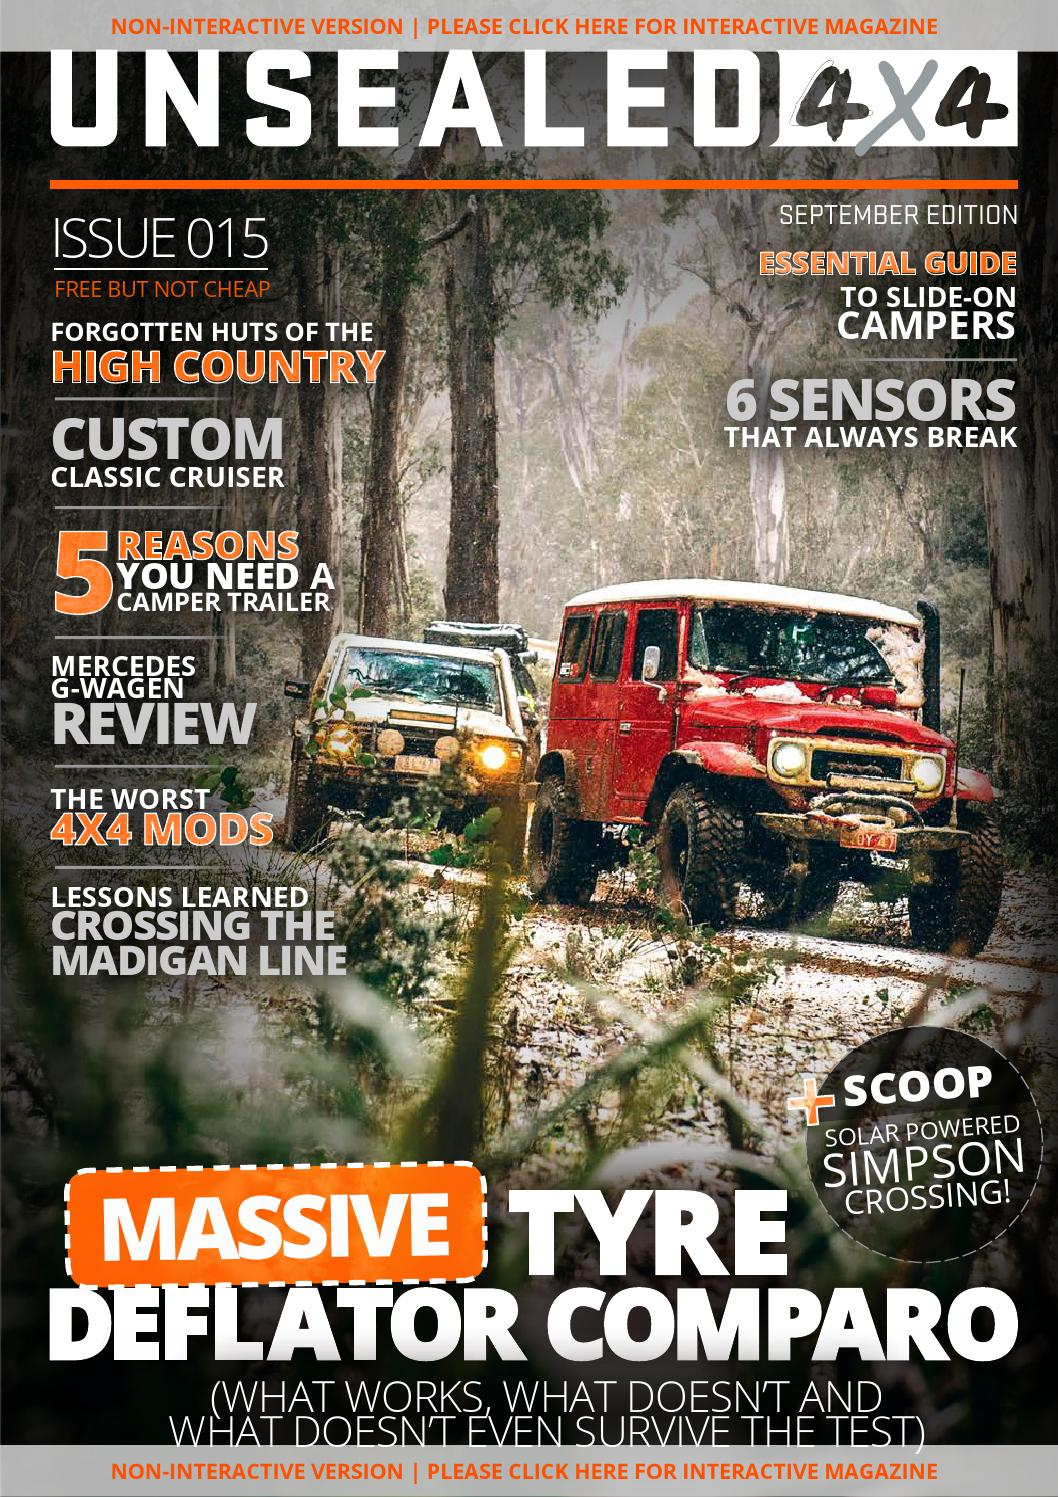 UNSEALED 4X4 ISSUE 015 by UNSEALED 4X4 - issuu